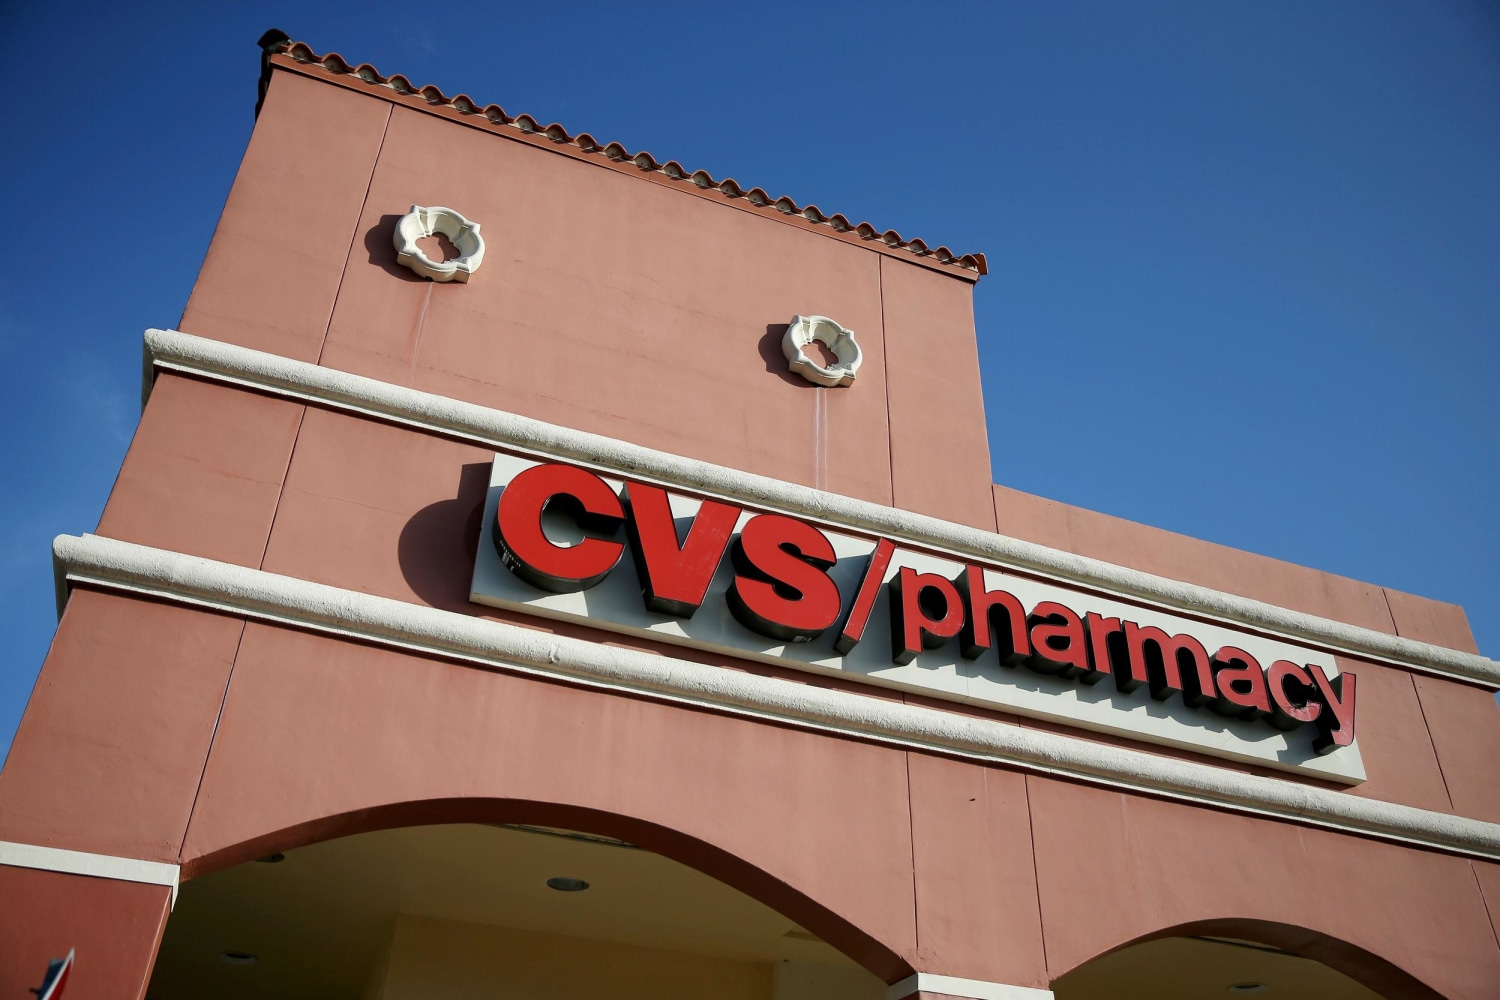 cvs charges more for generic drugs paid for with insurance  lawsuit claims